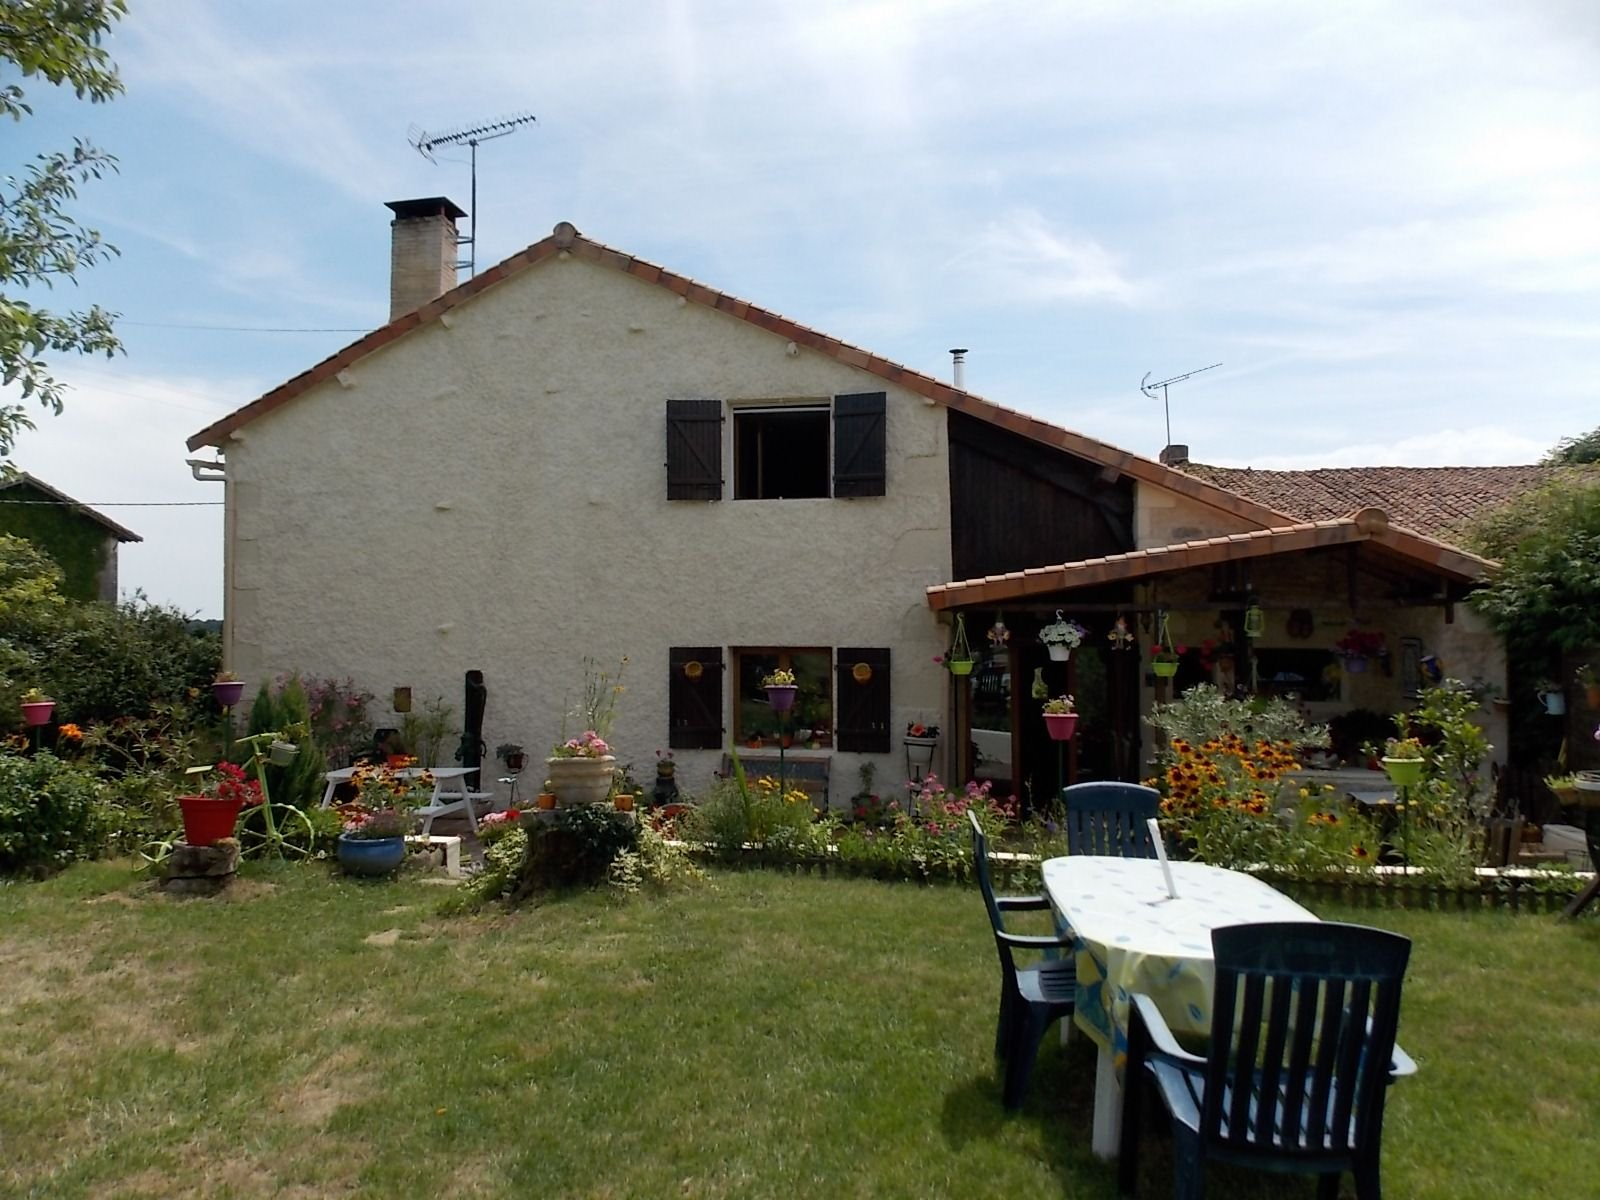 3 bed house with outbuildings and land